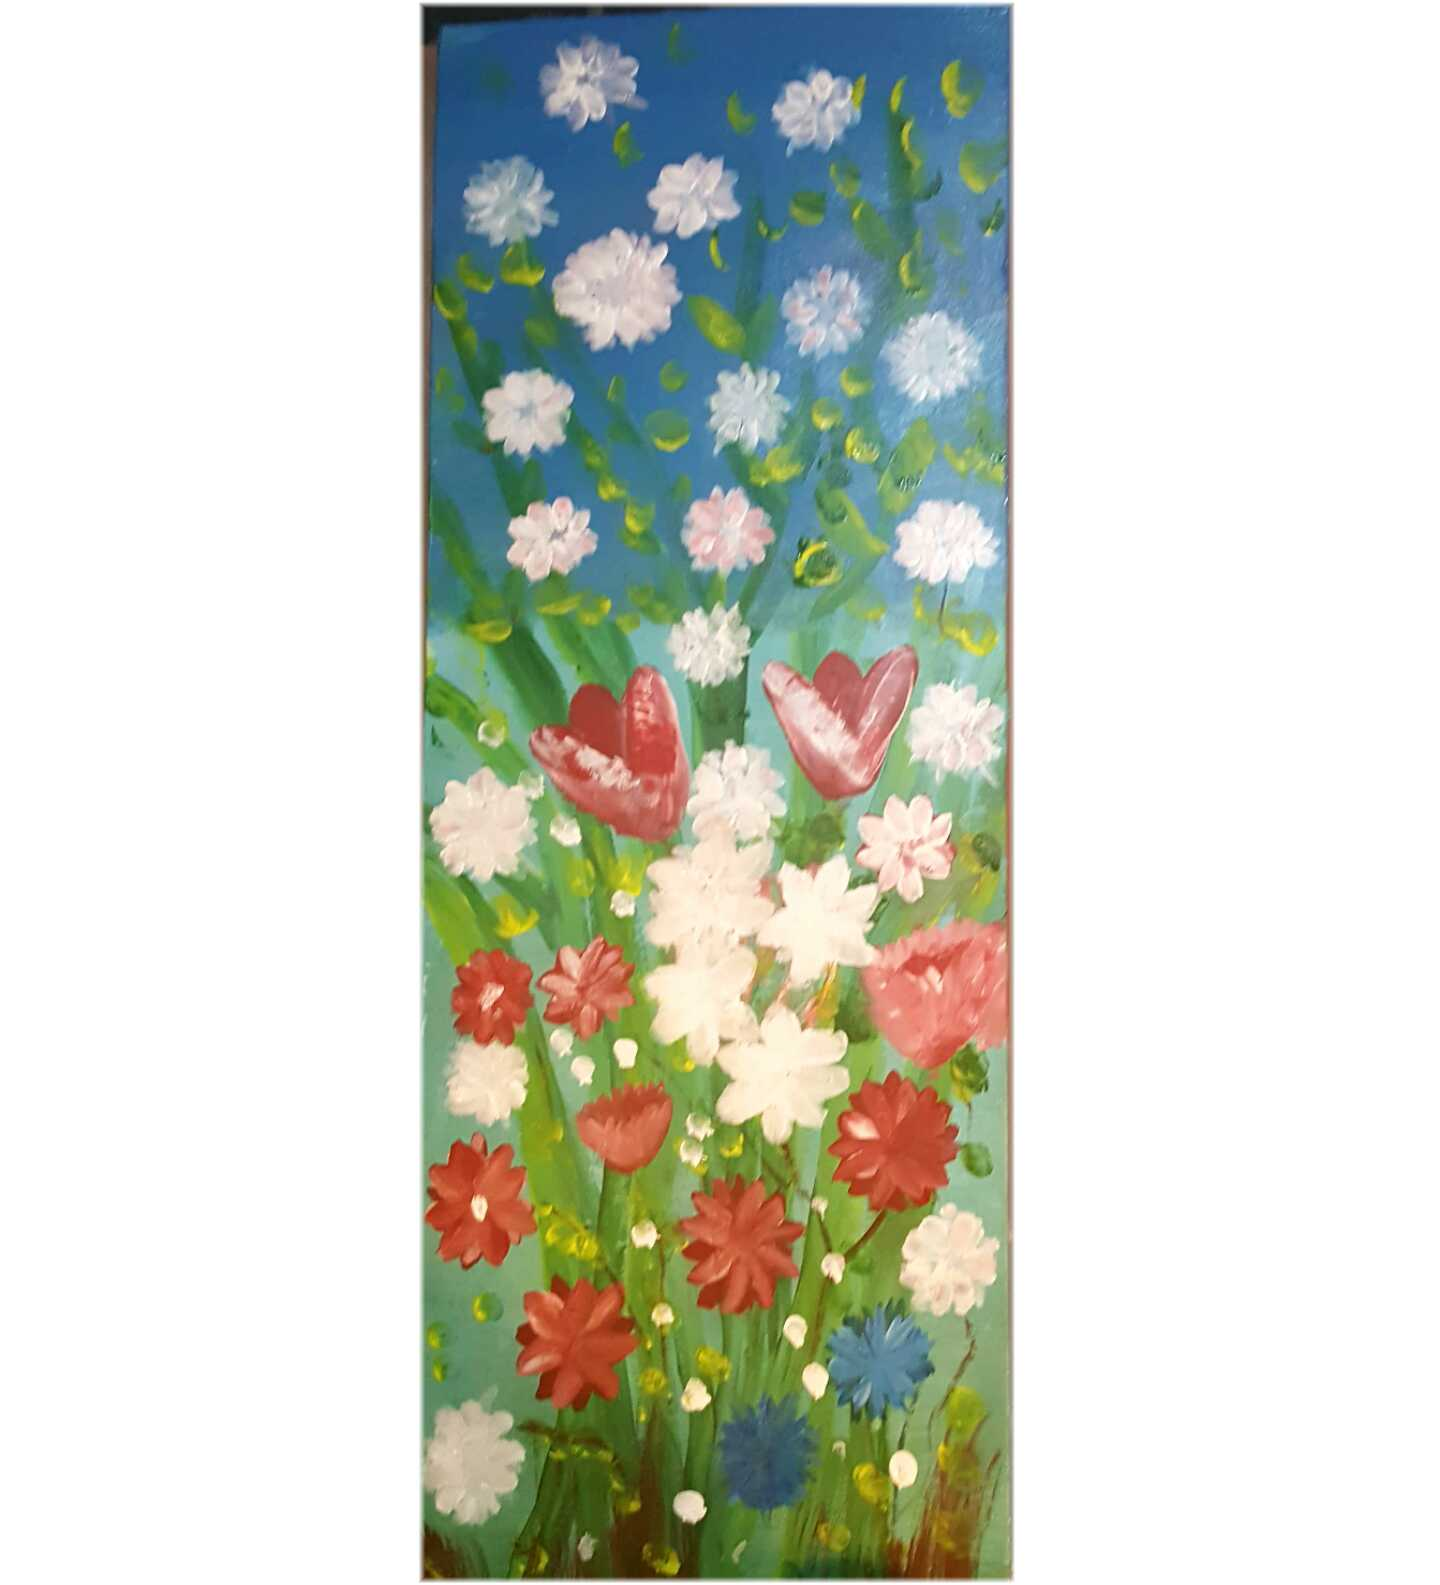 With summer Flowers in pink white and Blue